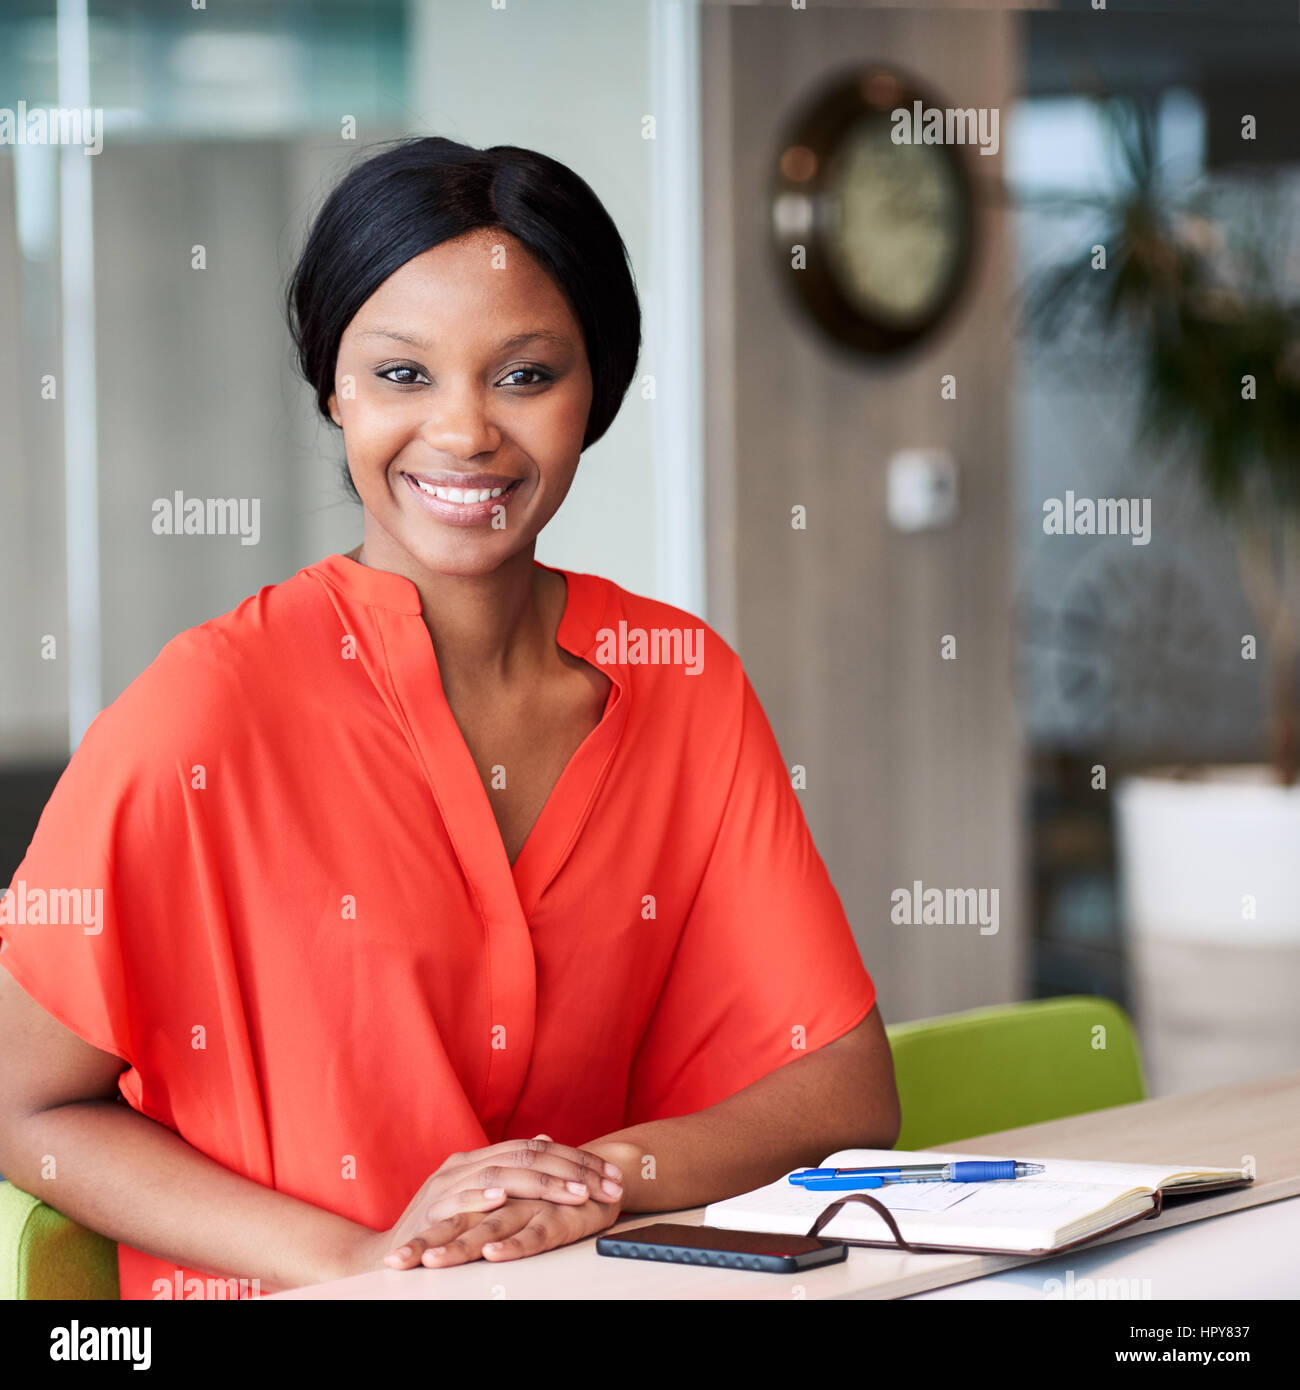 Square image of happy african woman smiling while looking into camera while wearimg a colourful orange blouse and - Stock Image